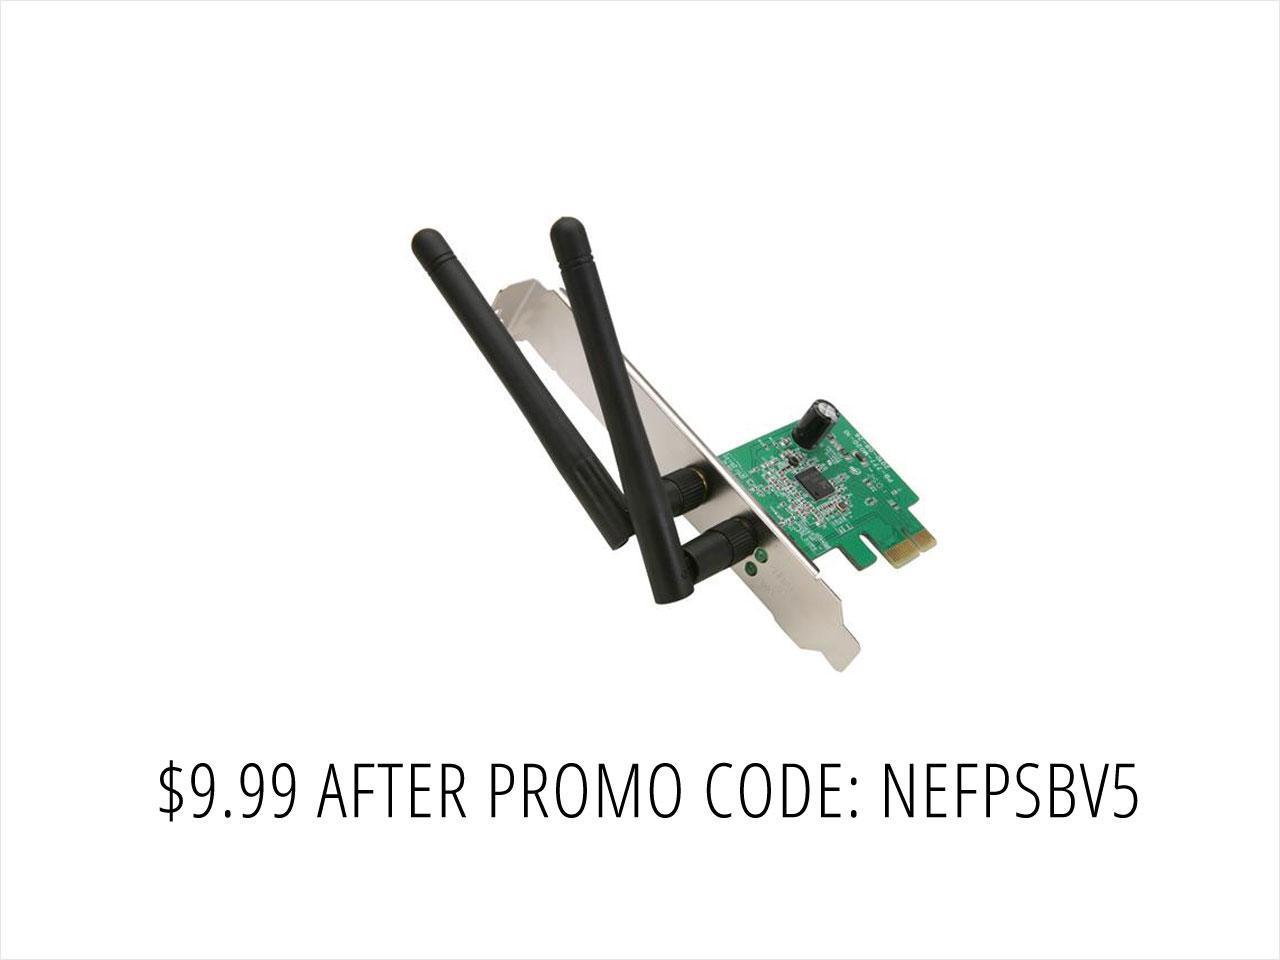 NETIS WF2113 300Mbps Wireless N PCI-E Adapter with 5 dBi High Gain Antennas and Low Profile Bracket Compatible with Windows MAC Linux OS